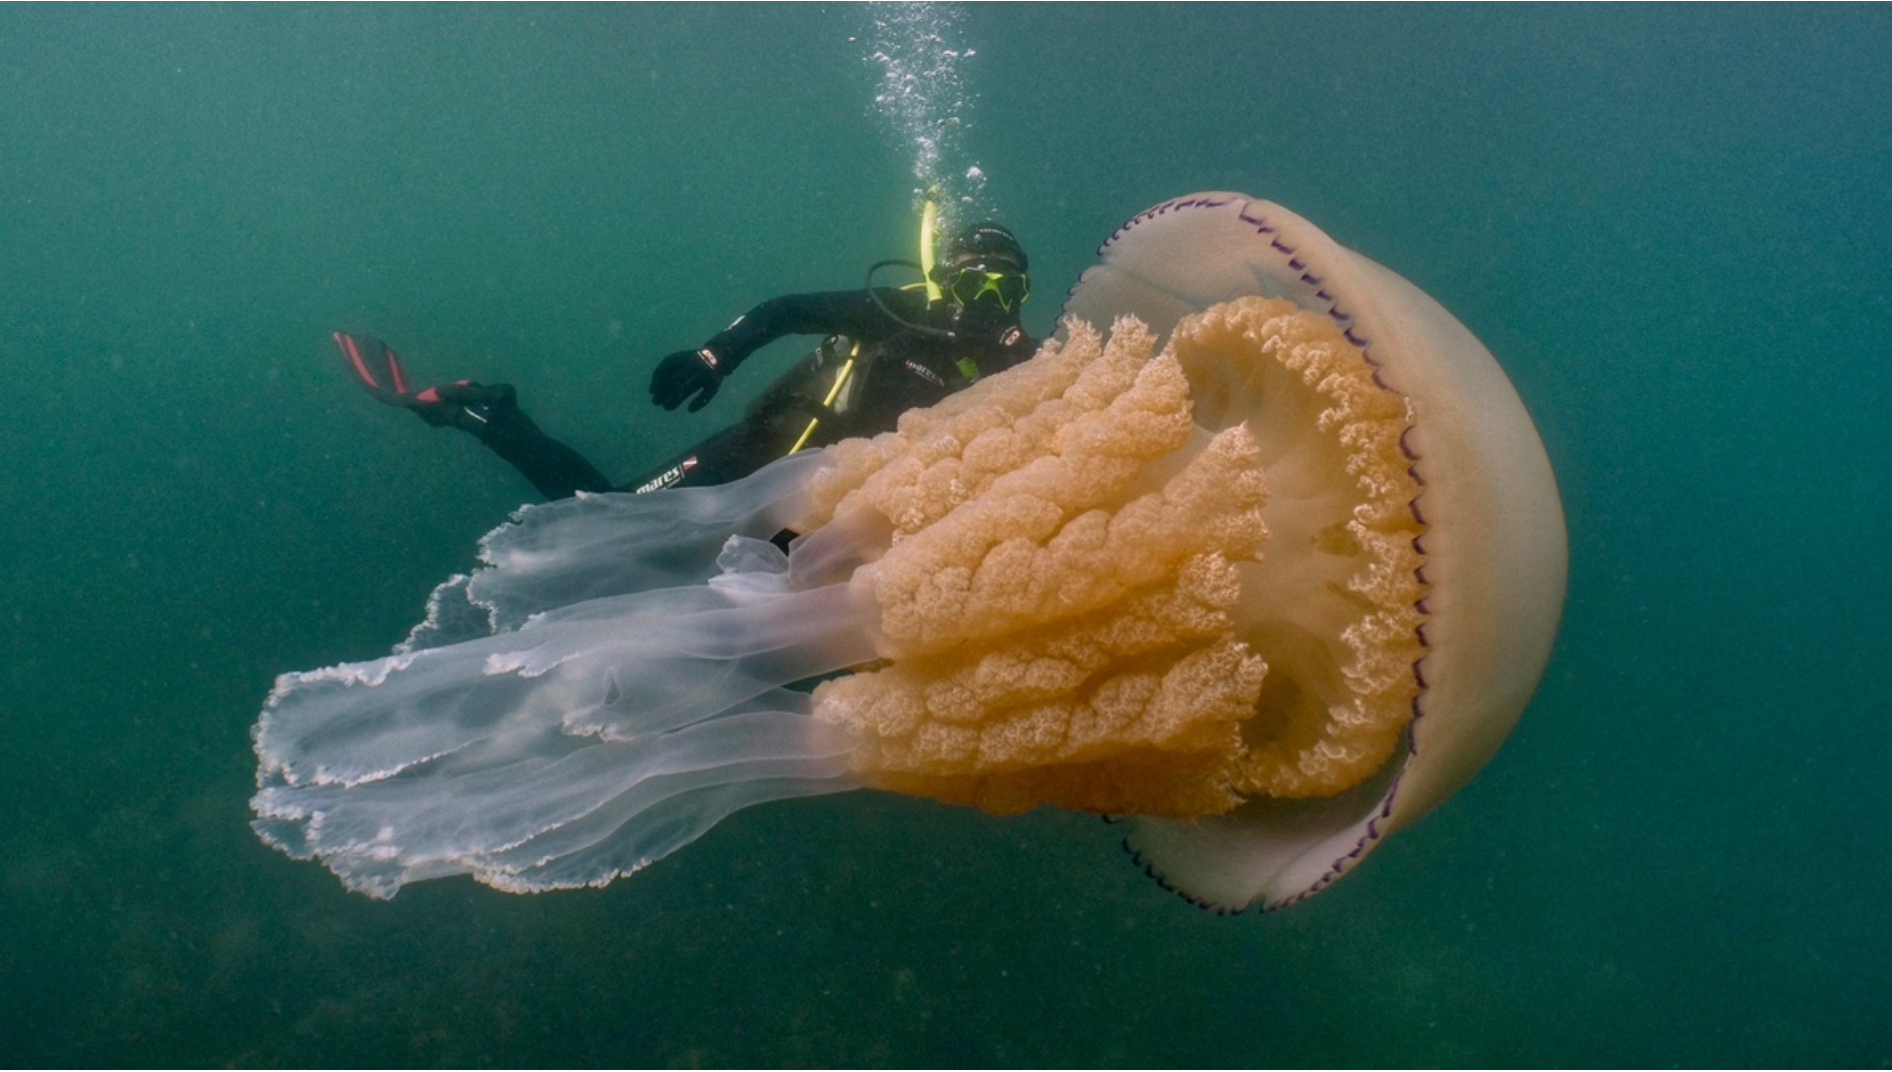 A Giant Jellyfish Photo credit:  Dan Abbott